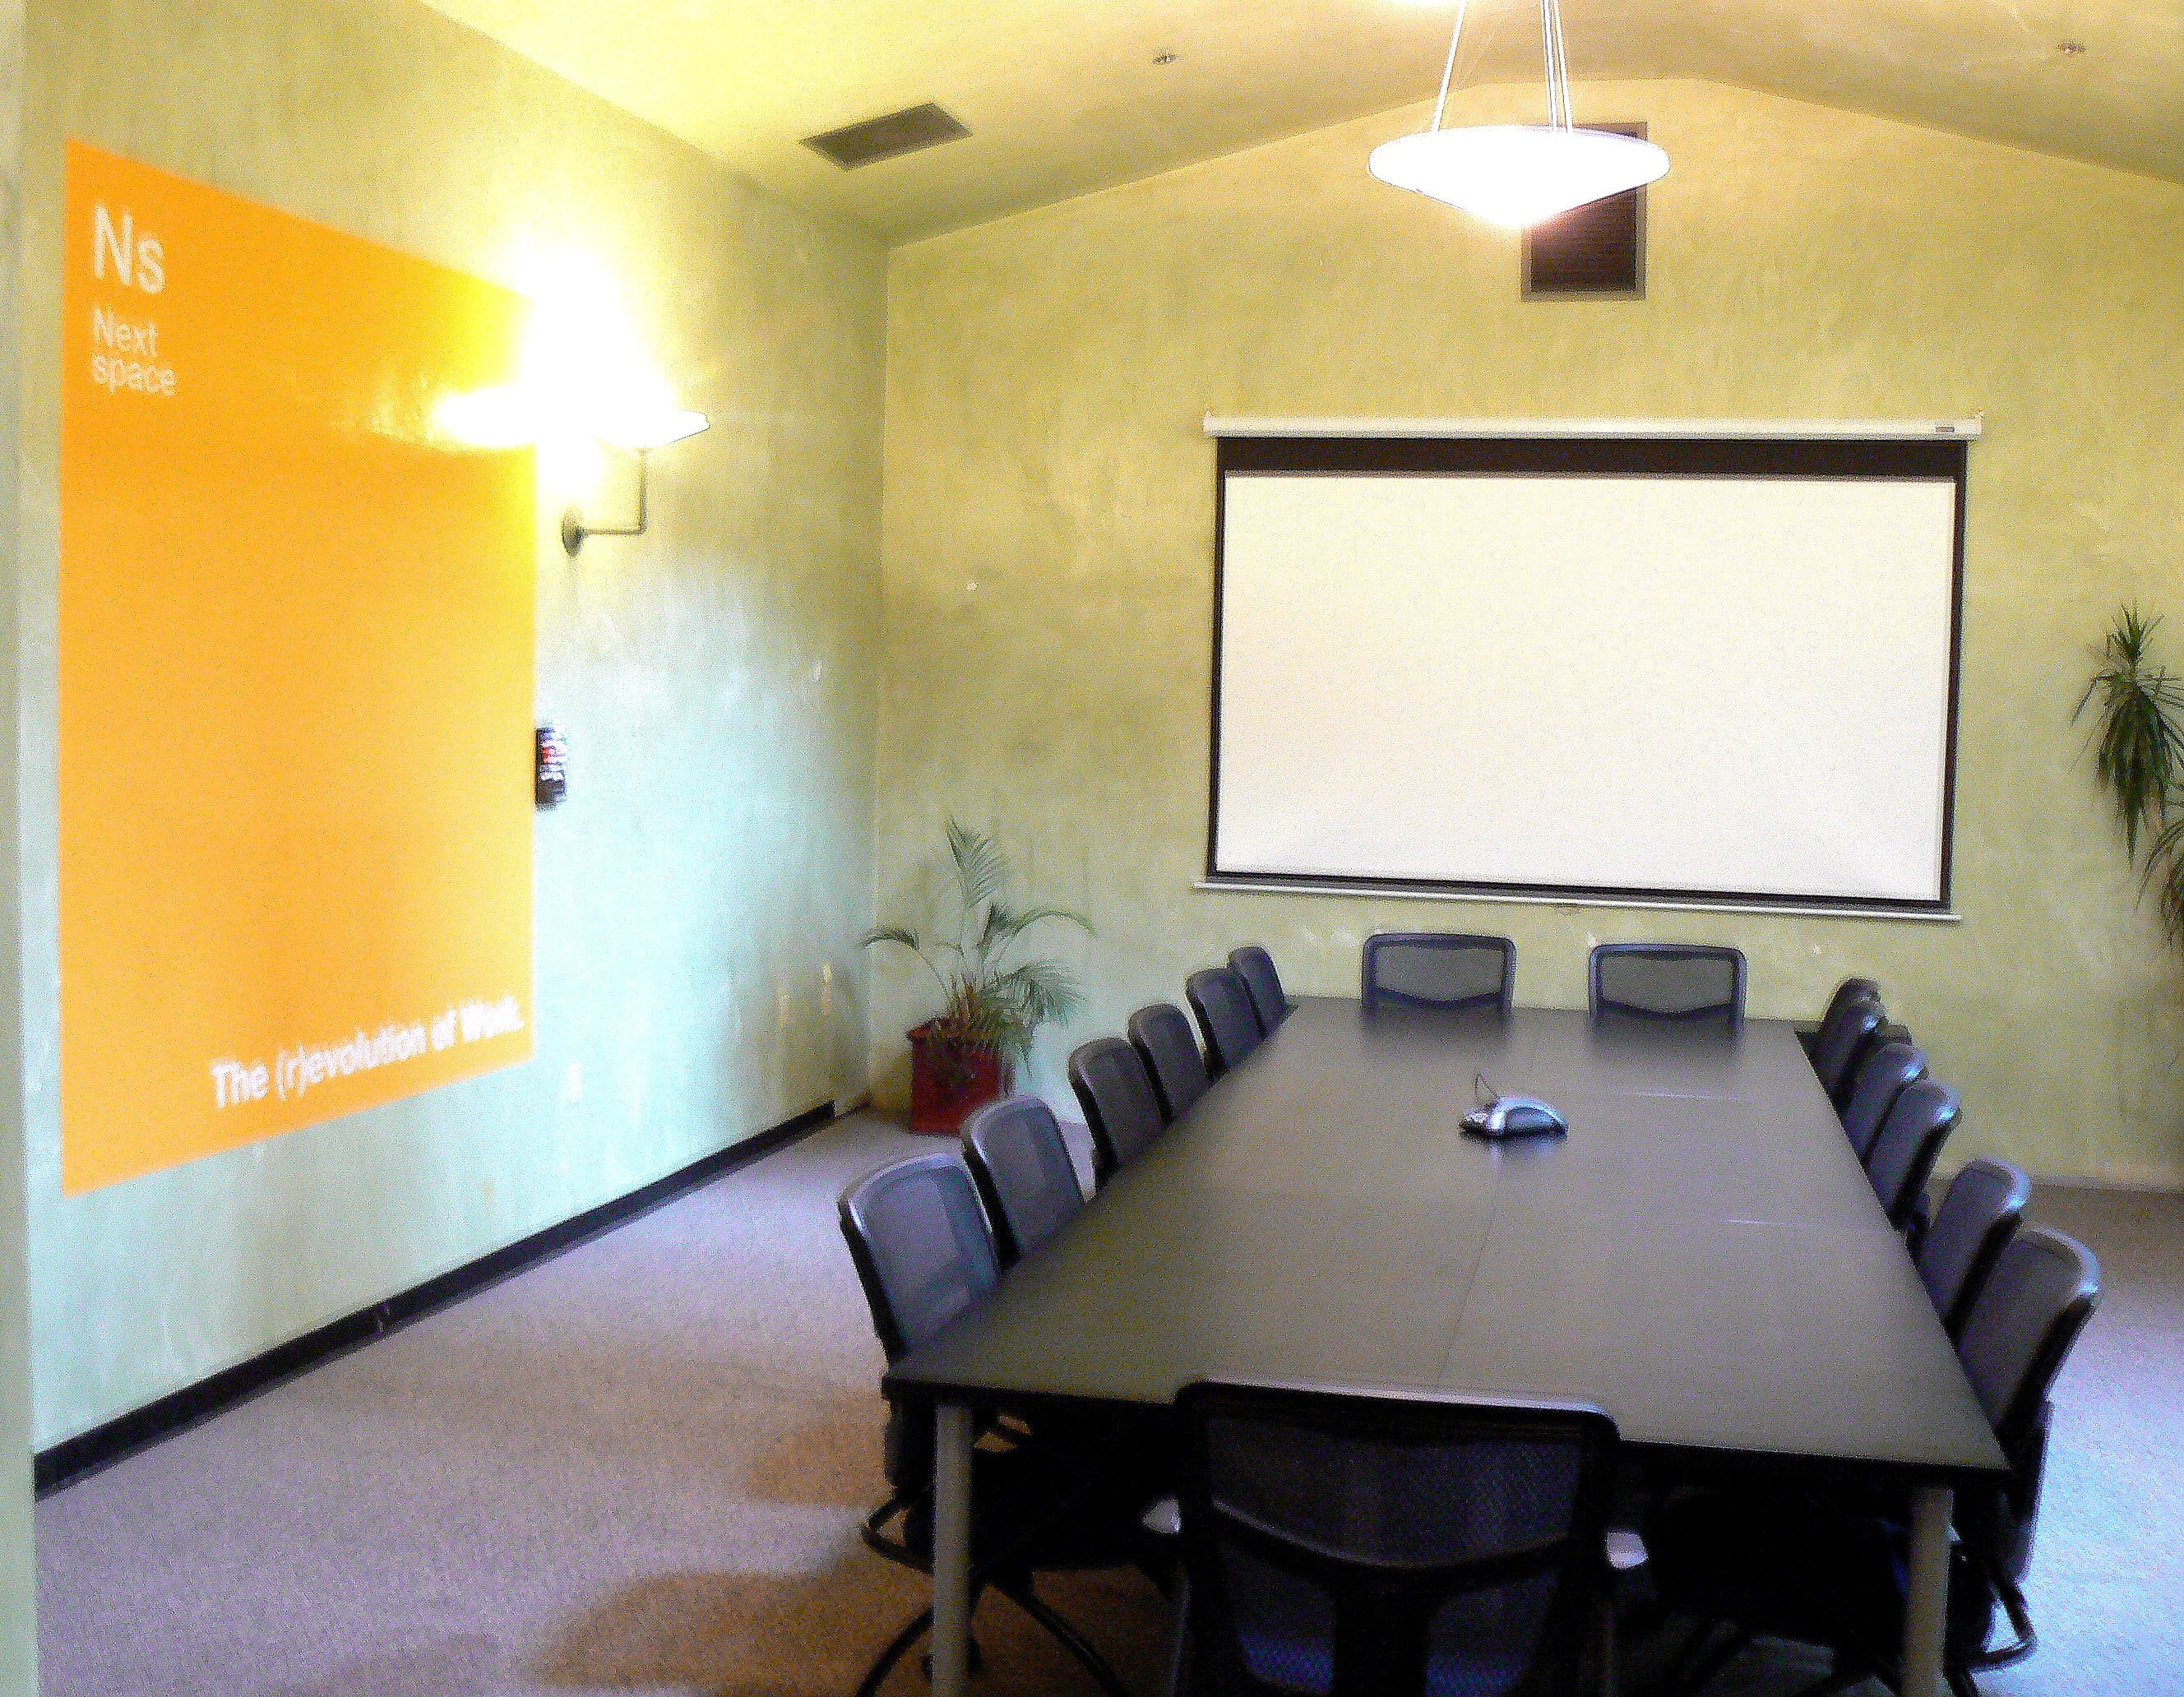 1000 images about office design on pinterest meeting rooms office designs and conference room charming office design sydney